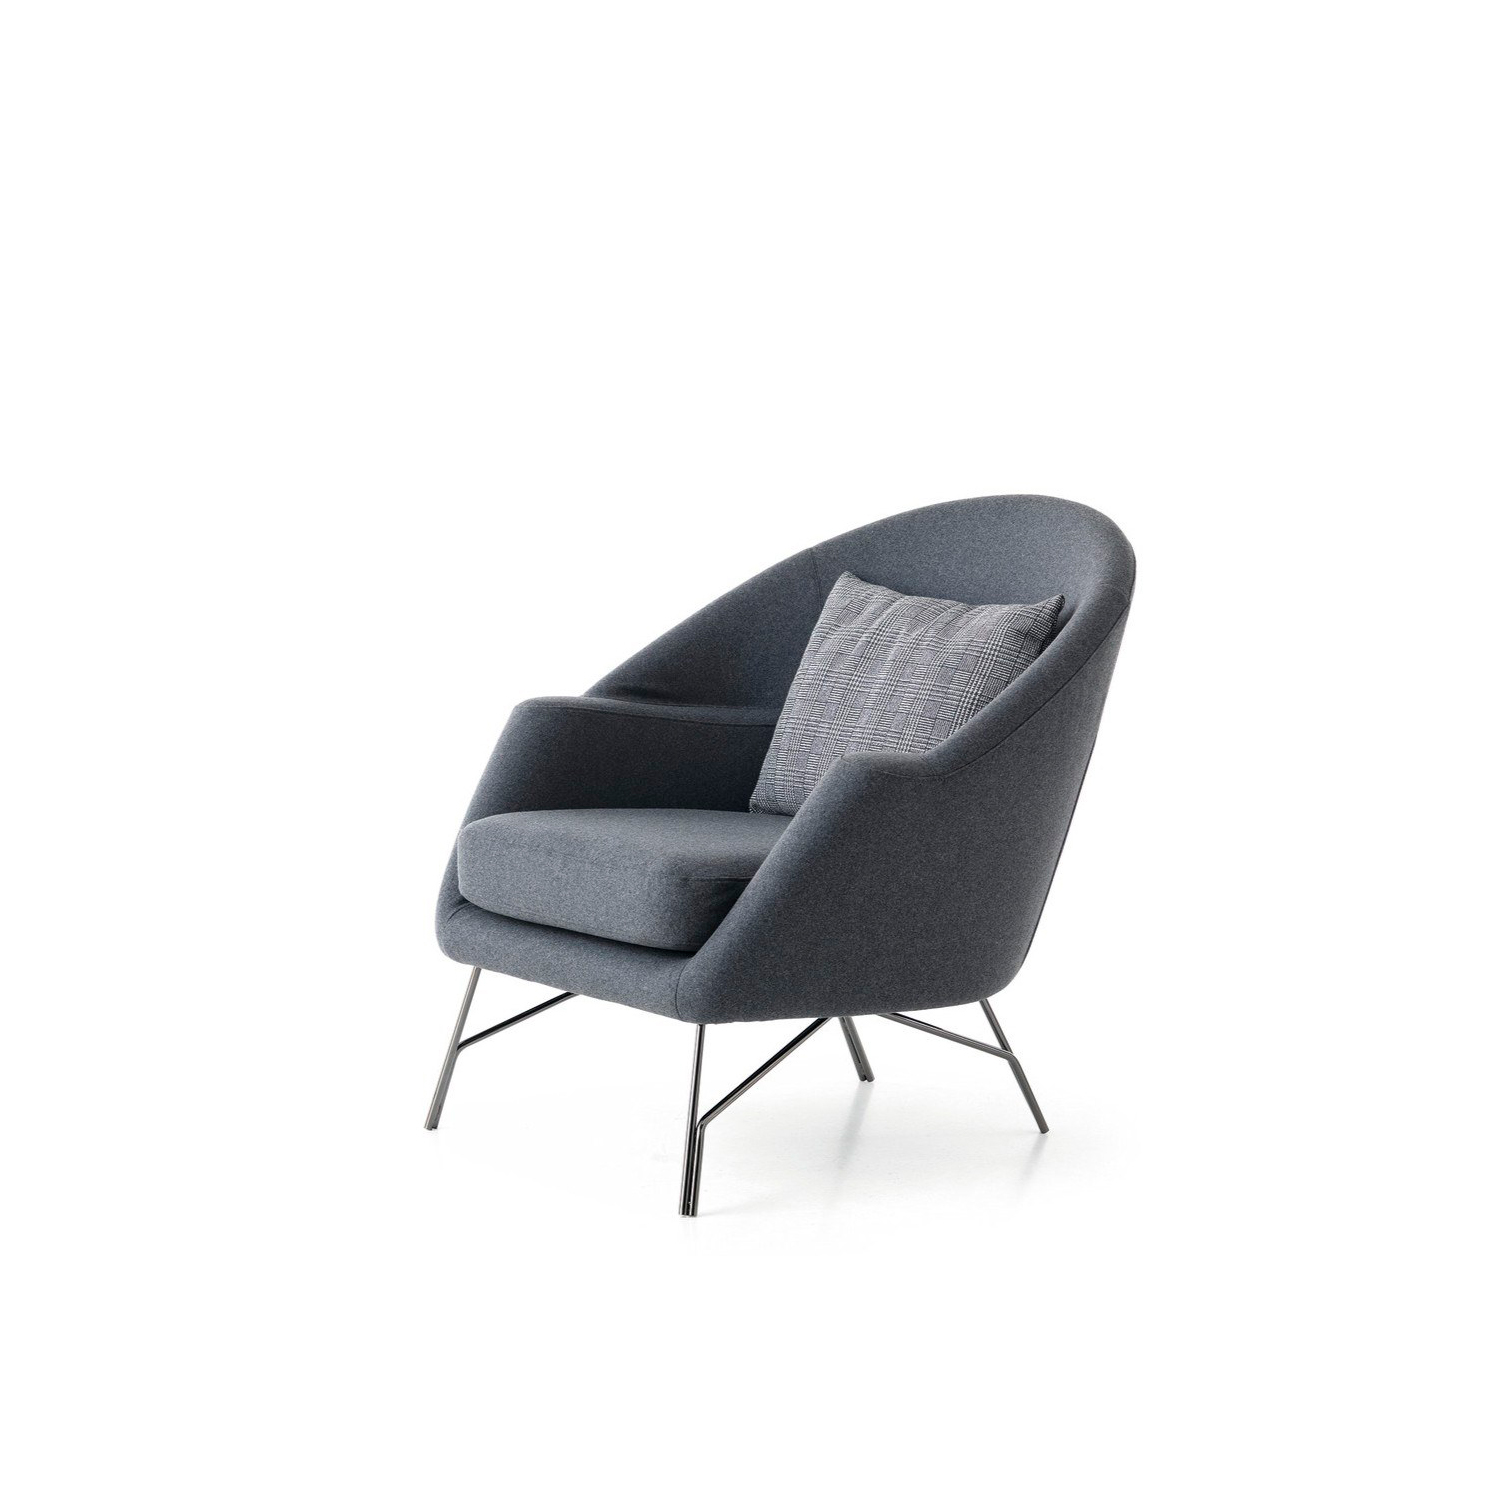 Chillout Fabric Lounge Armchair - As soothing as background music, Chillout explores the new design trend that recreates old classics with a modern twist. Designed by Giuseppe Viganò, this piece of furniture draws its inspiration from a laid-back living area, whilst its slinky shape harks back to the '50s. Sharp tailoring details and an original armrest give Chillout a balanced appeal and make for a highly comfortable seat. Slender yet inviting with a sleek retro feel, it oozes the unique allure of handmade objects. From home interiors to contract projects, this is an all-purpose purchase which will fit perfectly into any surroundings. Fully removable covers.   Additional removable cover is available, please enquire for prices.  Materials Structure in plywood with variable-density polyurethane foam covered with fine velvet coupled with resin 150gr/sqm. Feet in 12 mm wire drawn black nickel finish. The seat cushion is made with polyurethane foam core and memory foam covered with fine velvet coupled with resign 100gr/sqm. The lumbar cushions is made in 100% cotton fabric and padded with washed and sterilized goose down. | Matter of Stuff